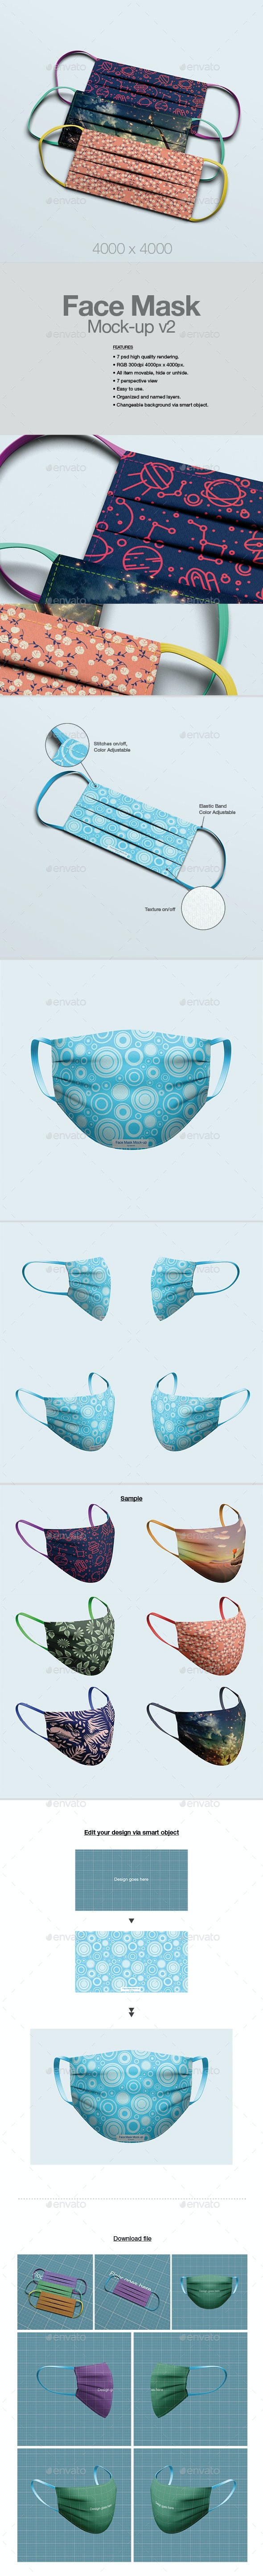 Face Mask Mock-up v2 - Miscellaneous Graphics